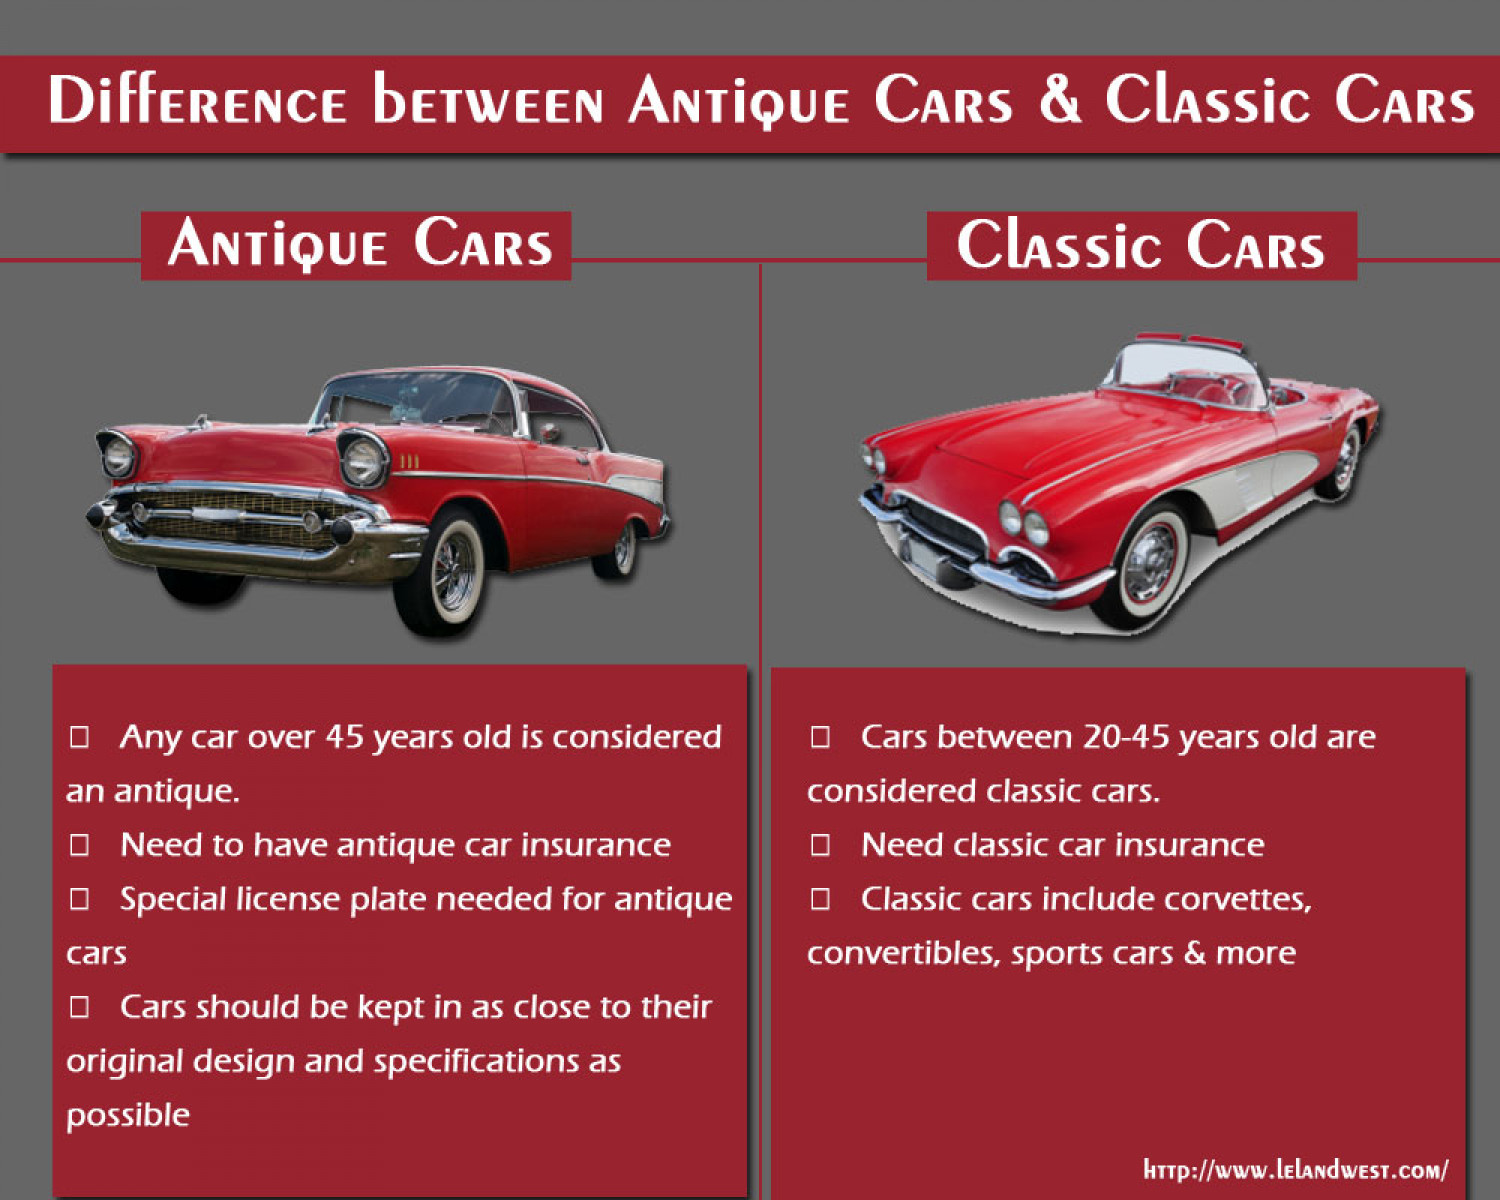 Difference between Antique Cars & Classic Cars | Visual.ly